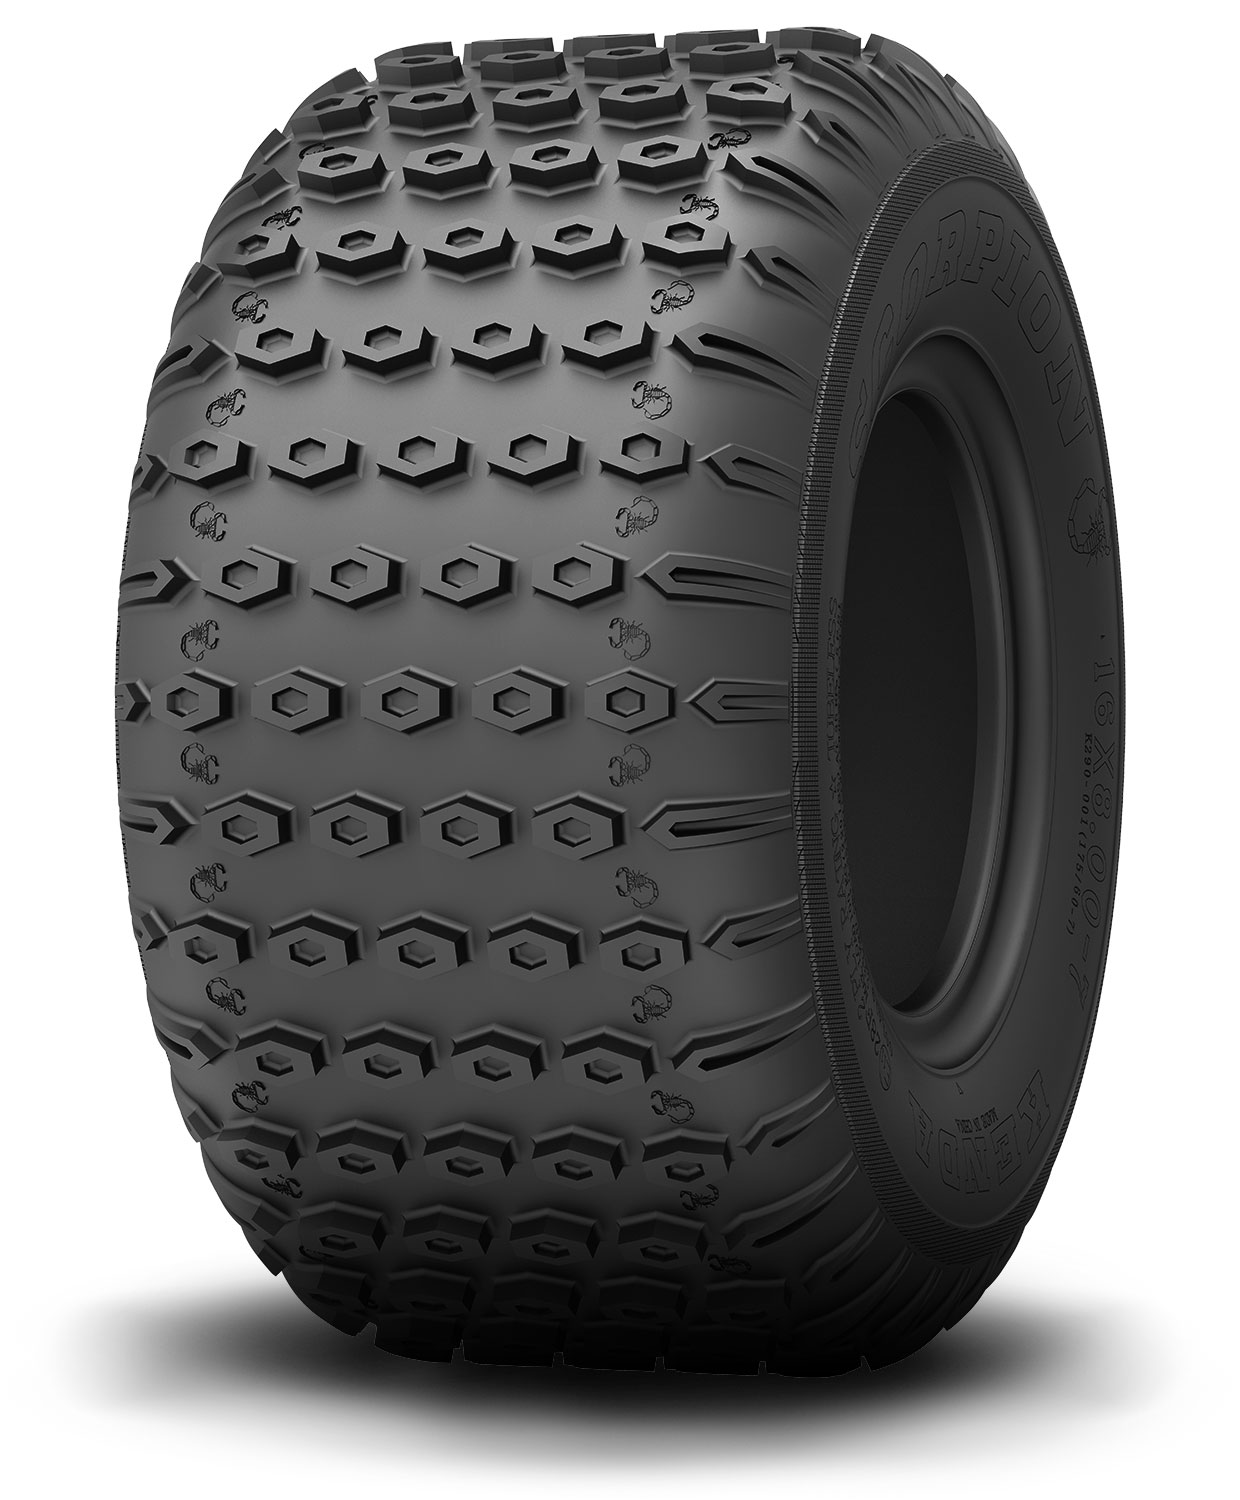 Kenda Scorpion K290 Tires